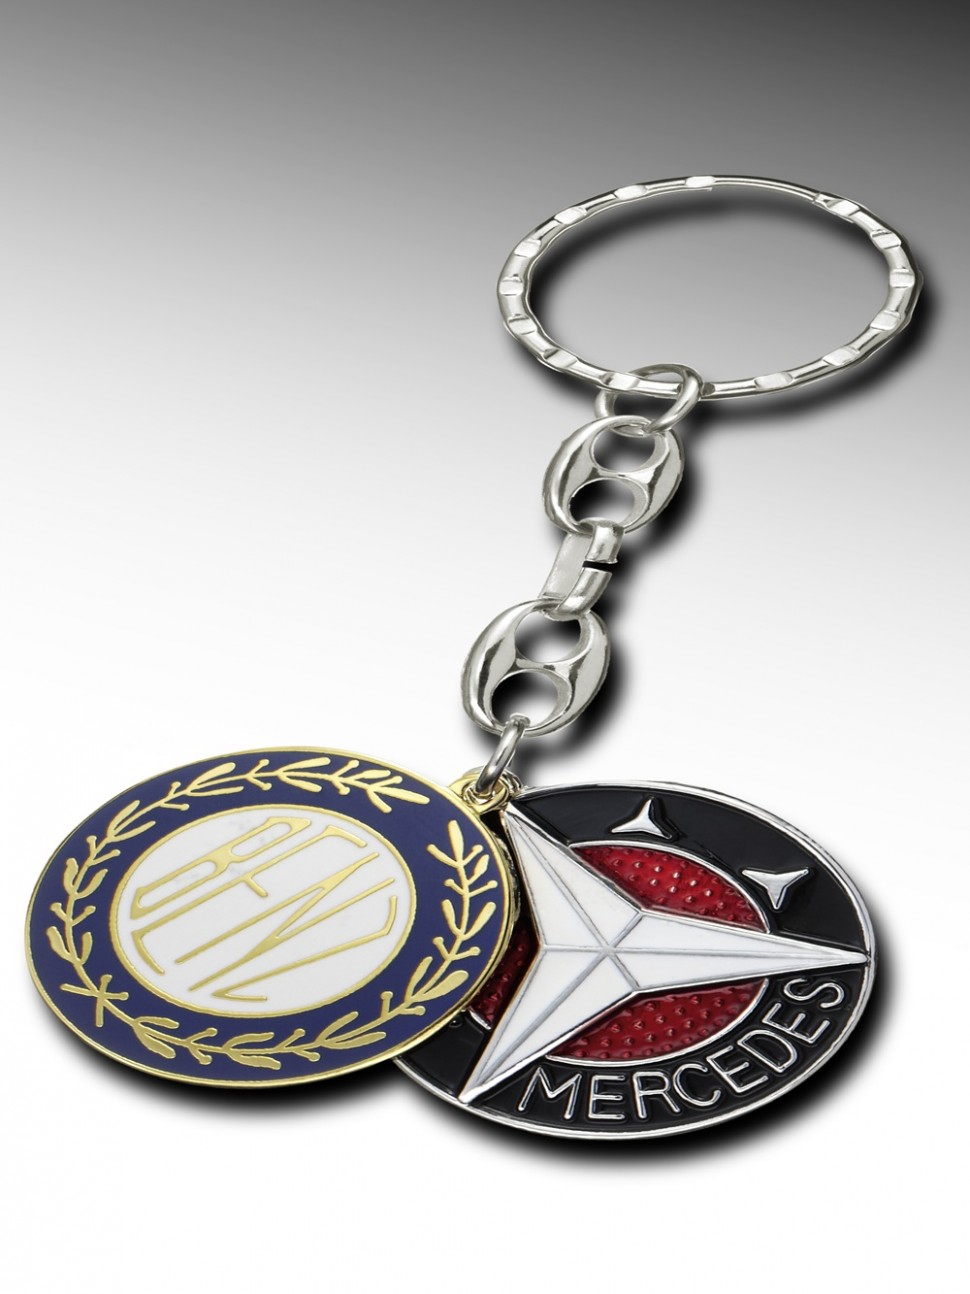 Mercedes benz key ring keyrings vintage stars b66043063 for Mercedes benz ring